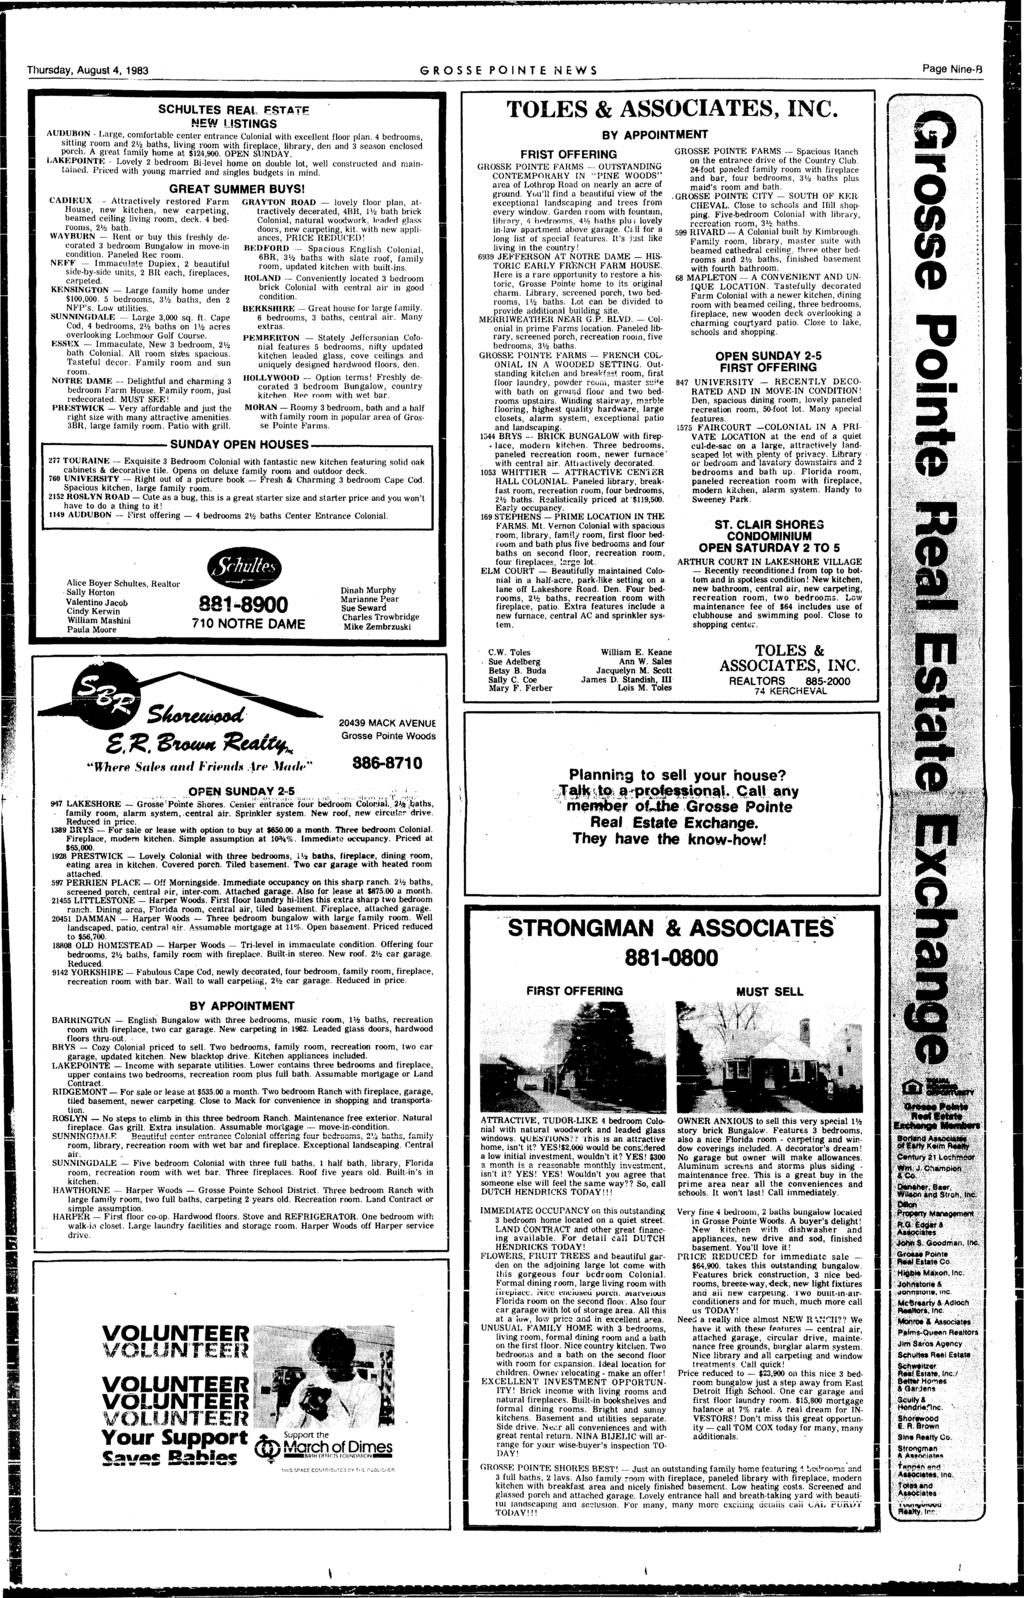 Grosse Pointe Ne Vv3 Pdf Wen 5500 Generator Wiring Diagram Thursday August 4 1983 Ponte News Page Nine B Schultes Real Pstatje